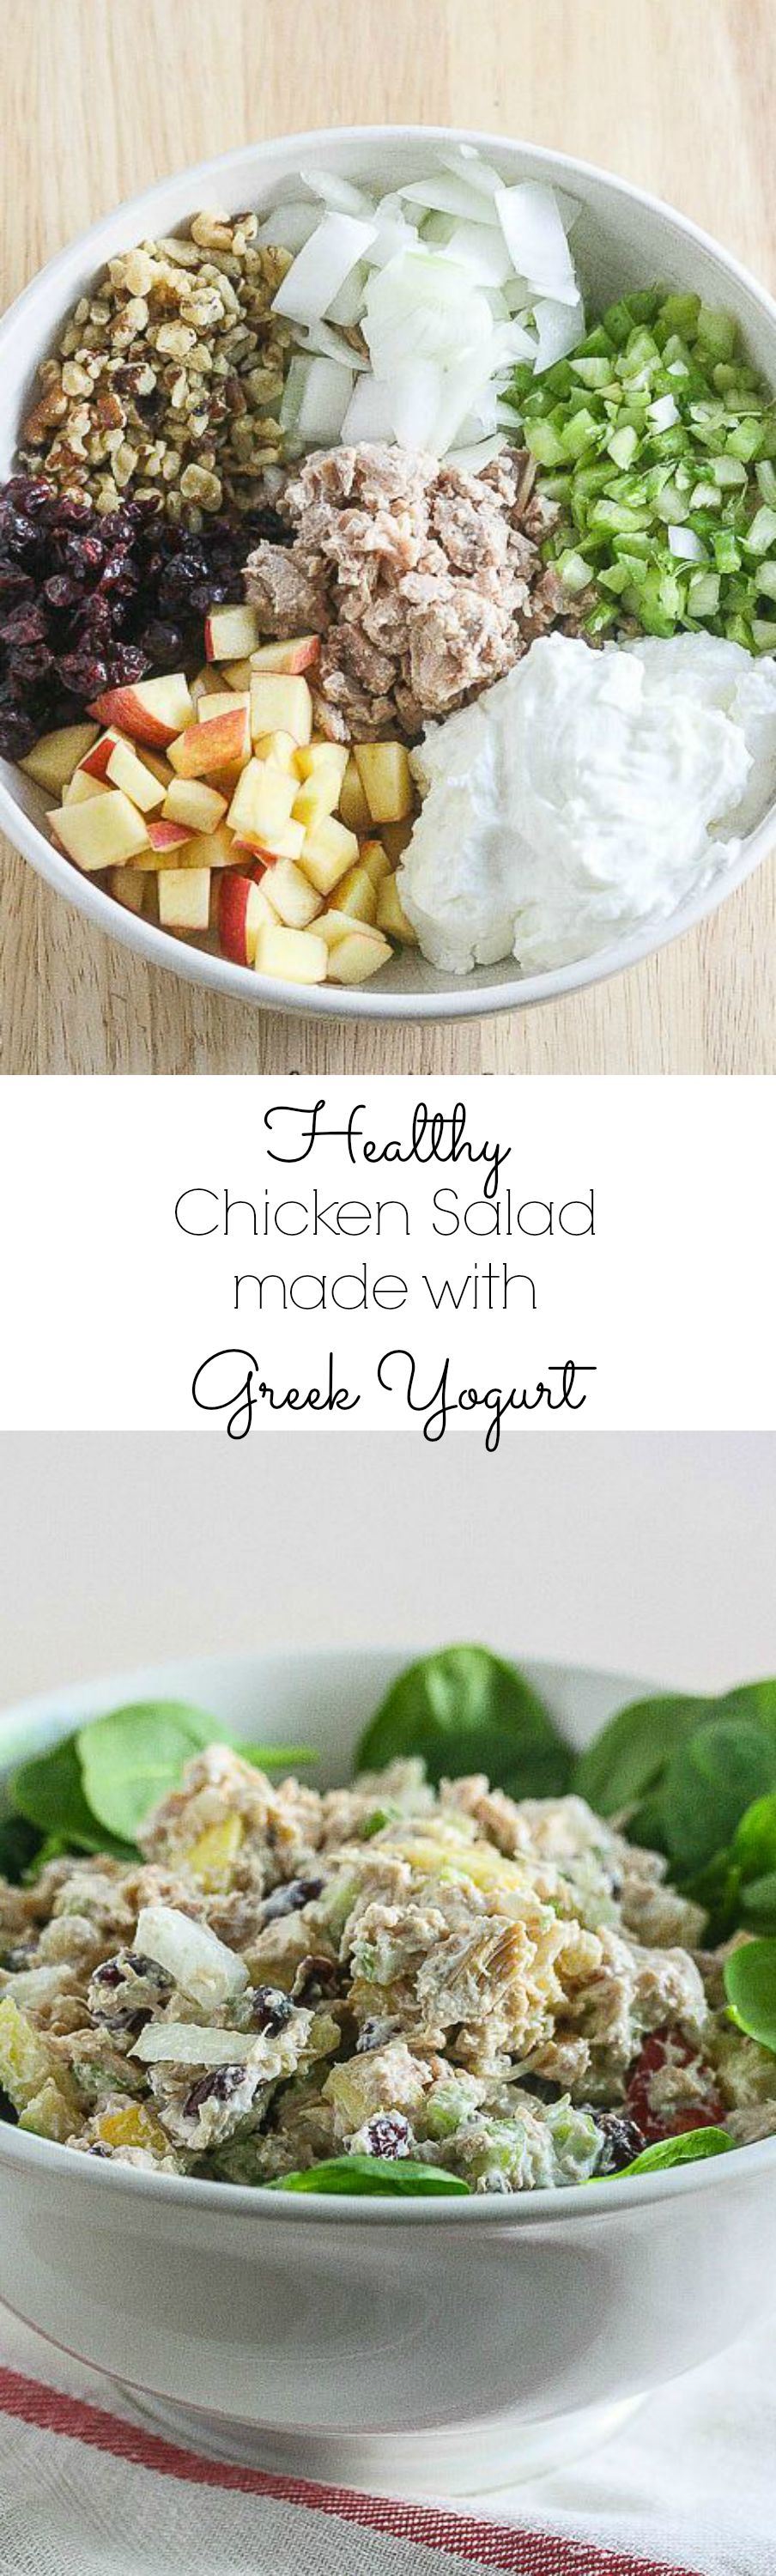 Healthy Chicken Salad made with Greek Yogurt @PacificFoods #NourishEveryBody